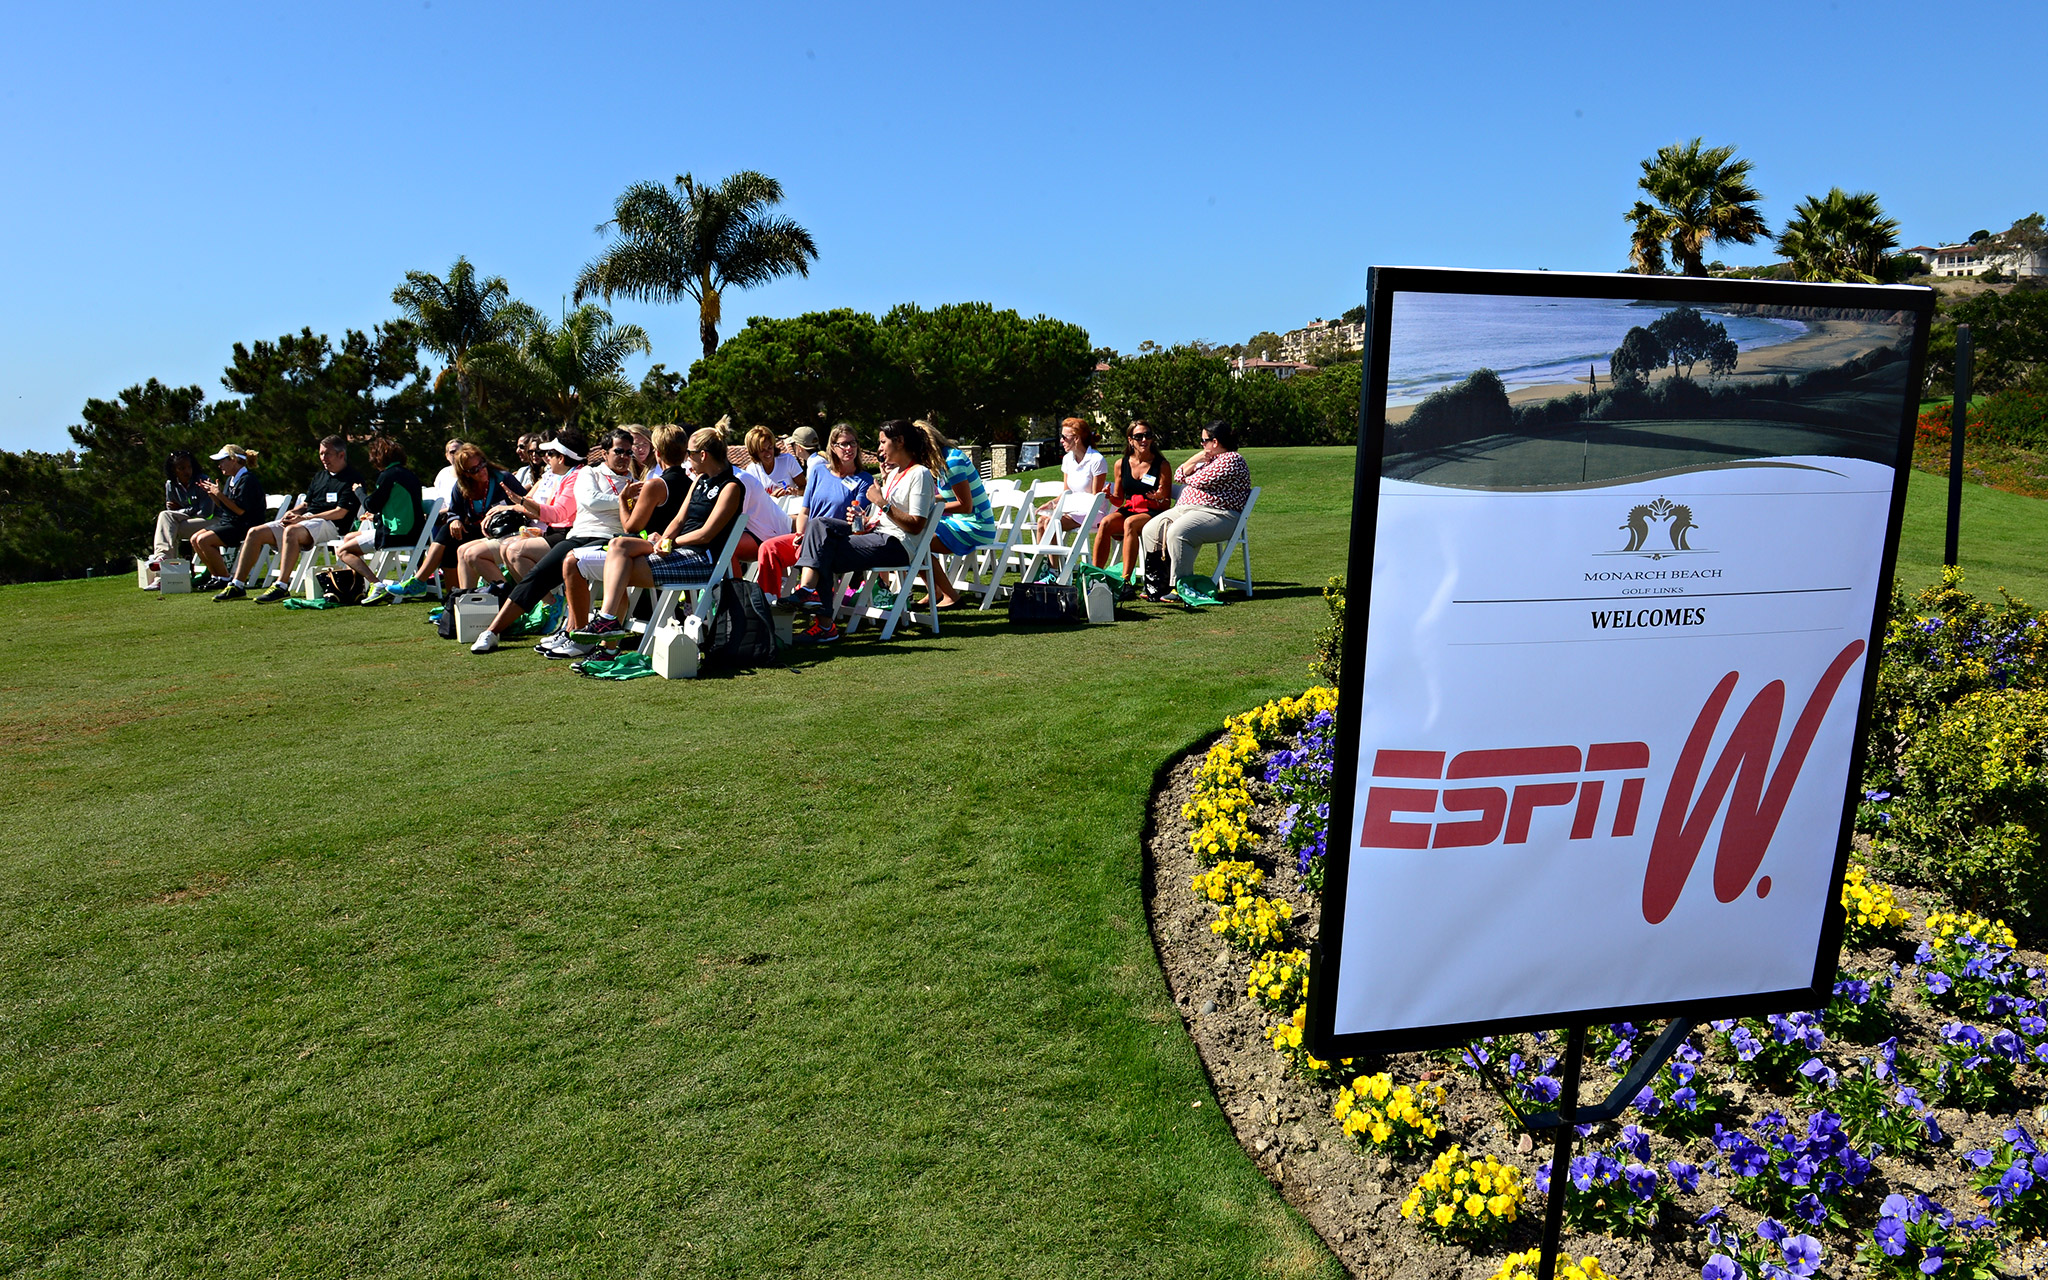 The PGA of America held a golf clinic for some of the attendees of the espnW Summit.